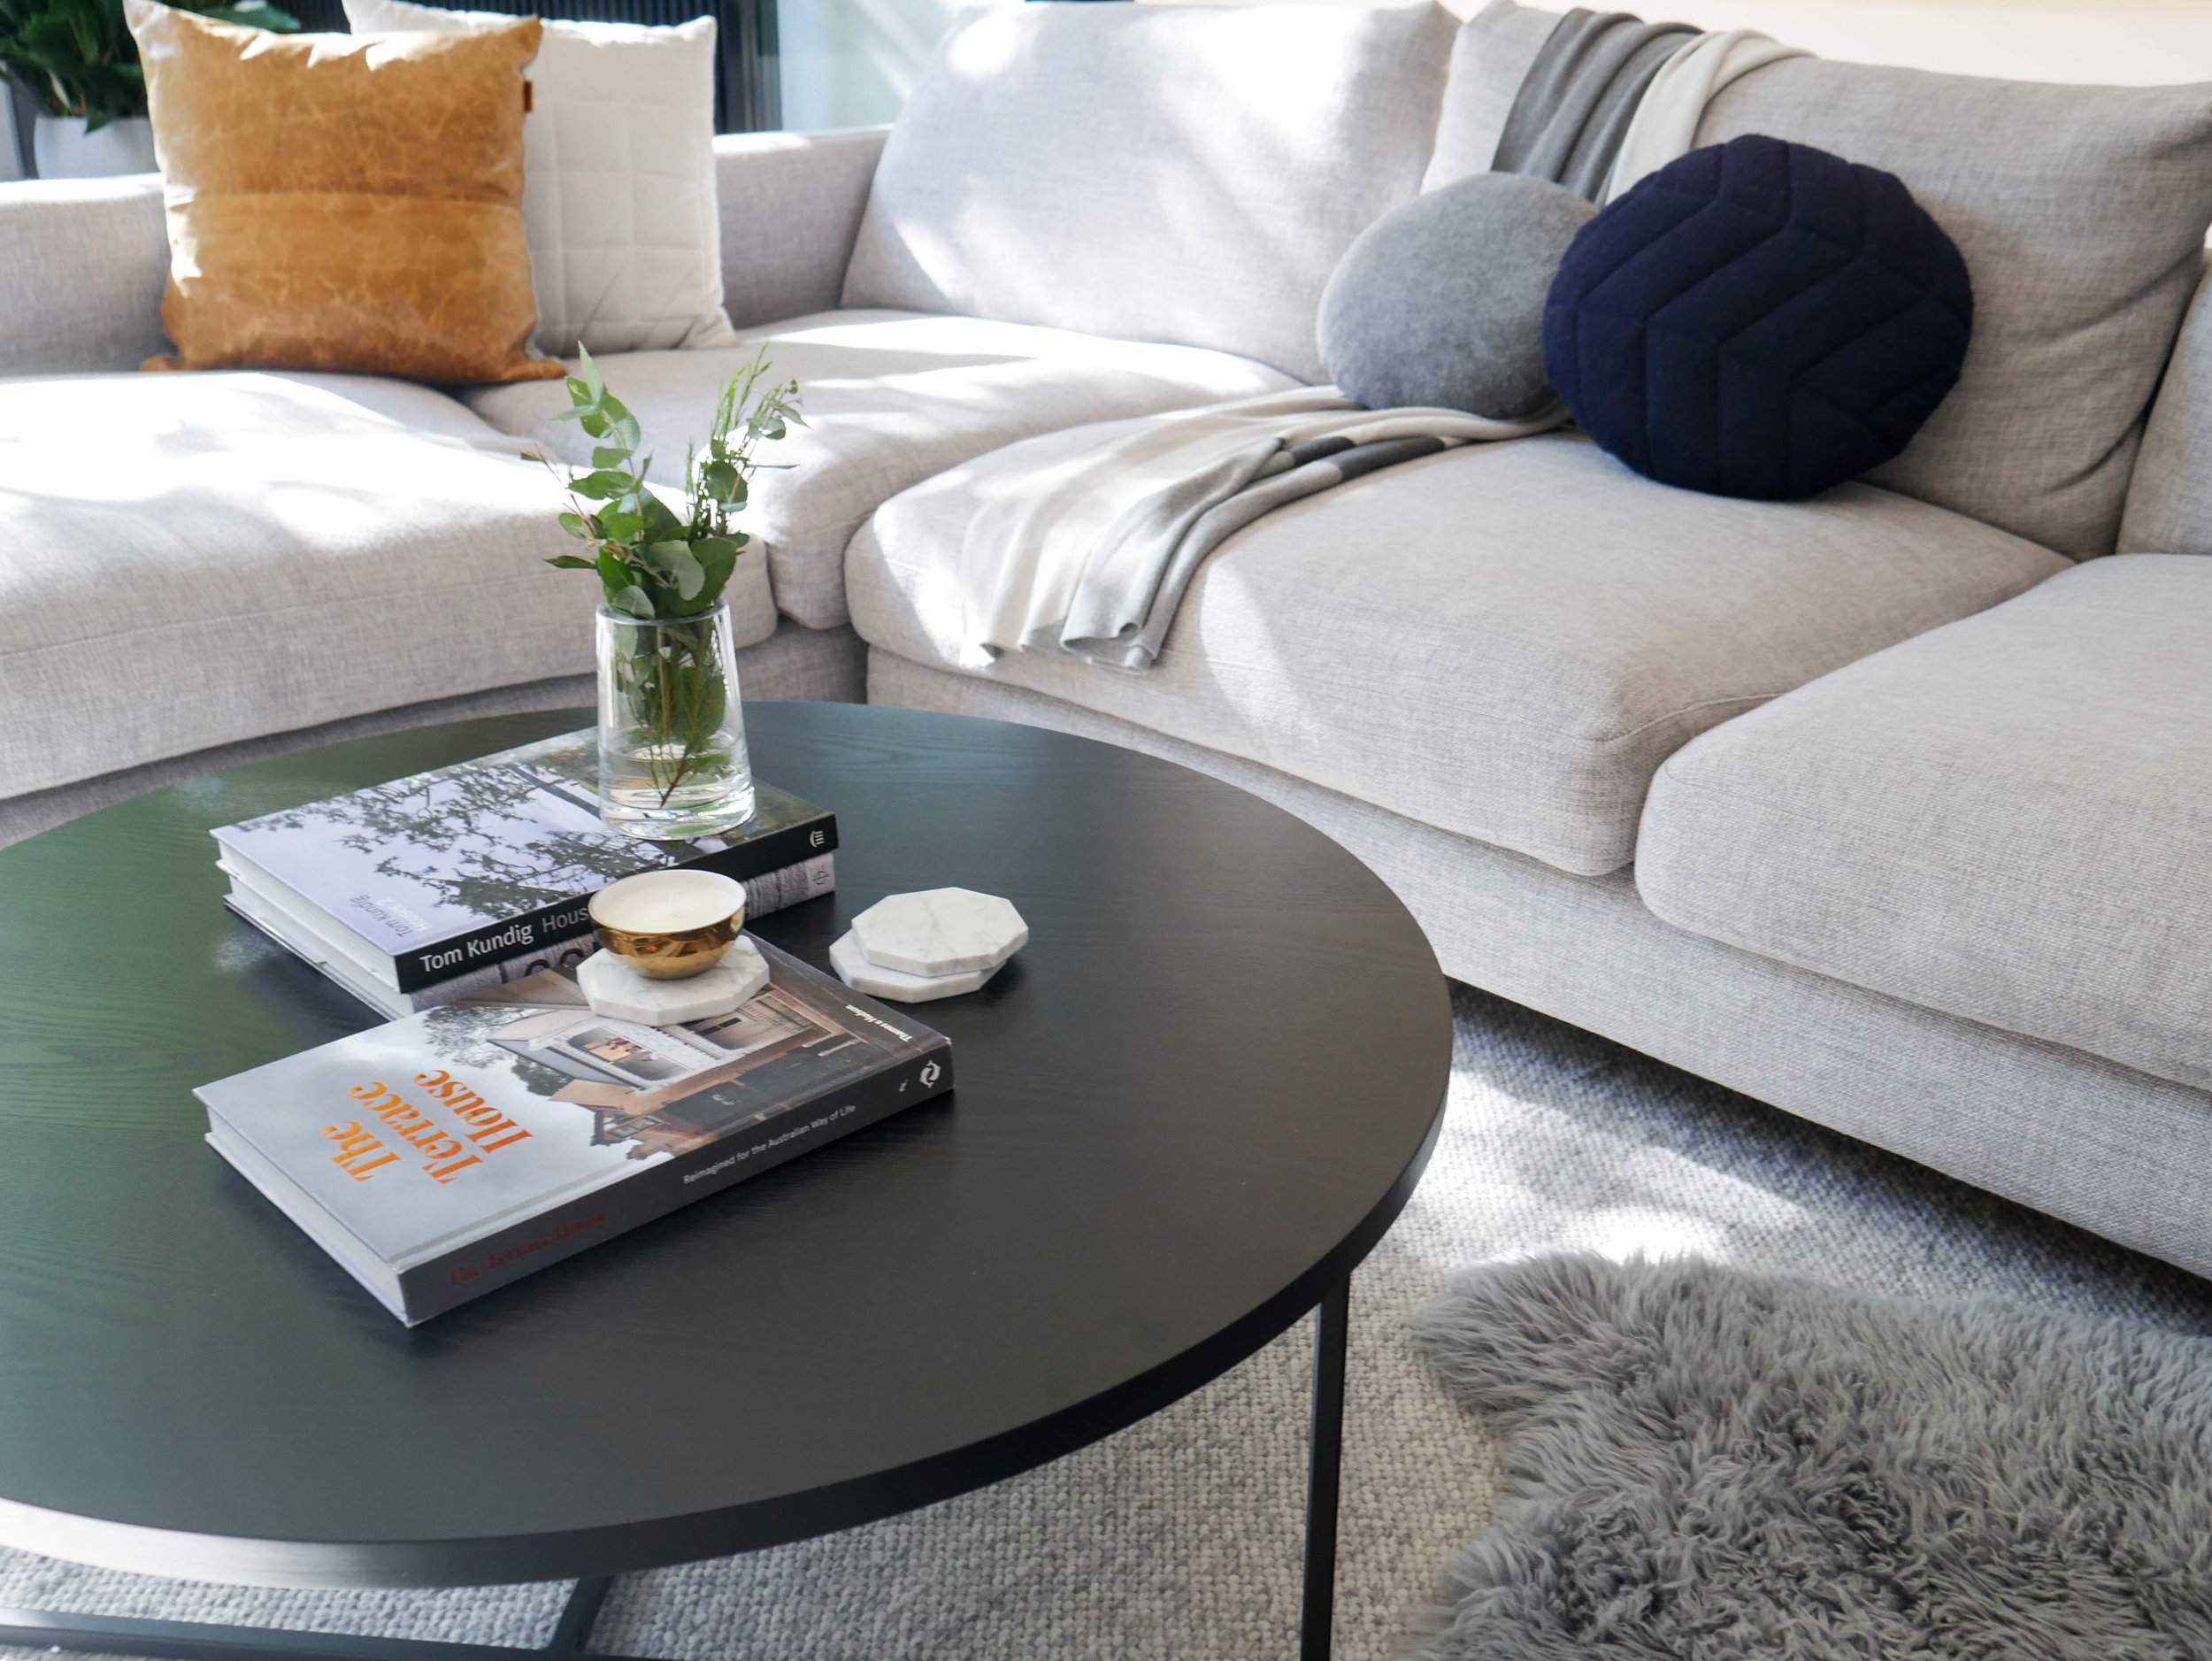 Turner Coffee Table  - Black Oak - Styling and Photography Dot + Pop